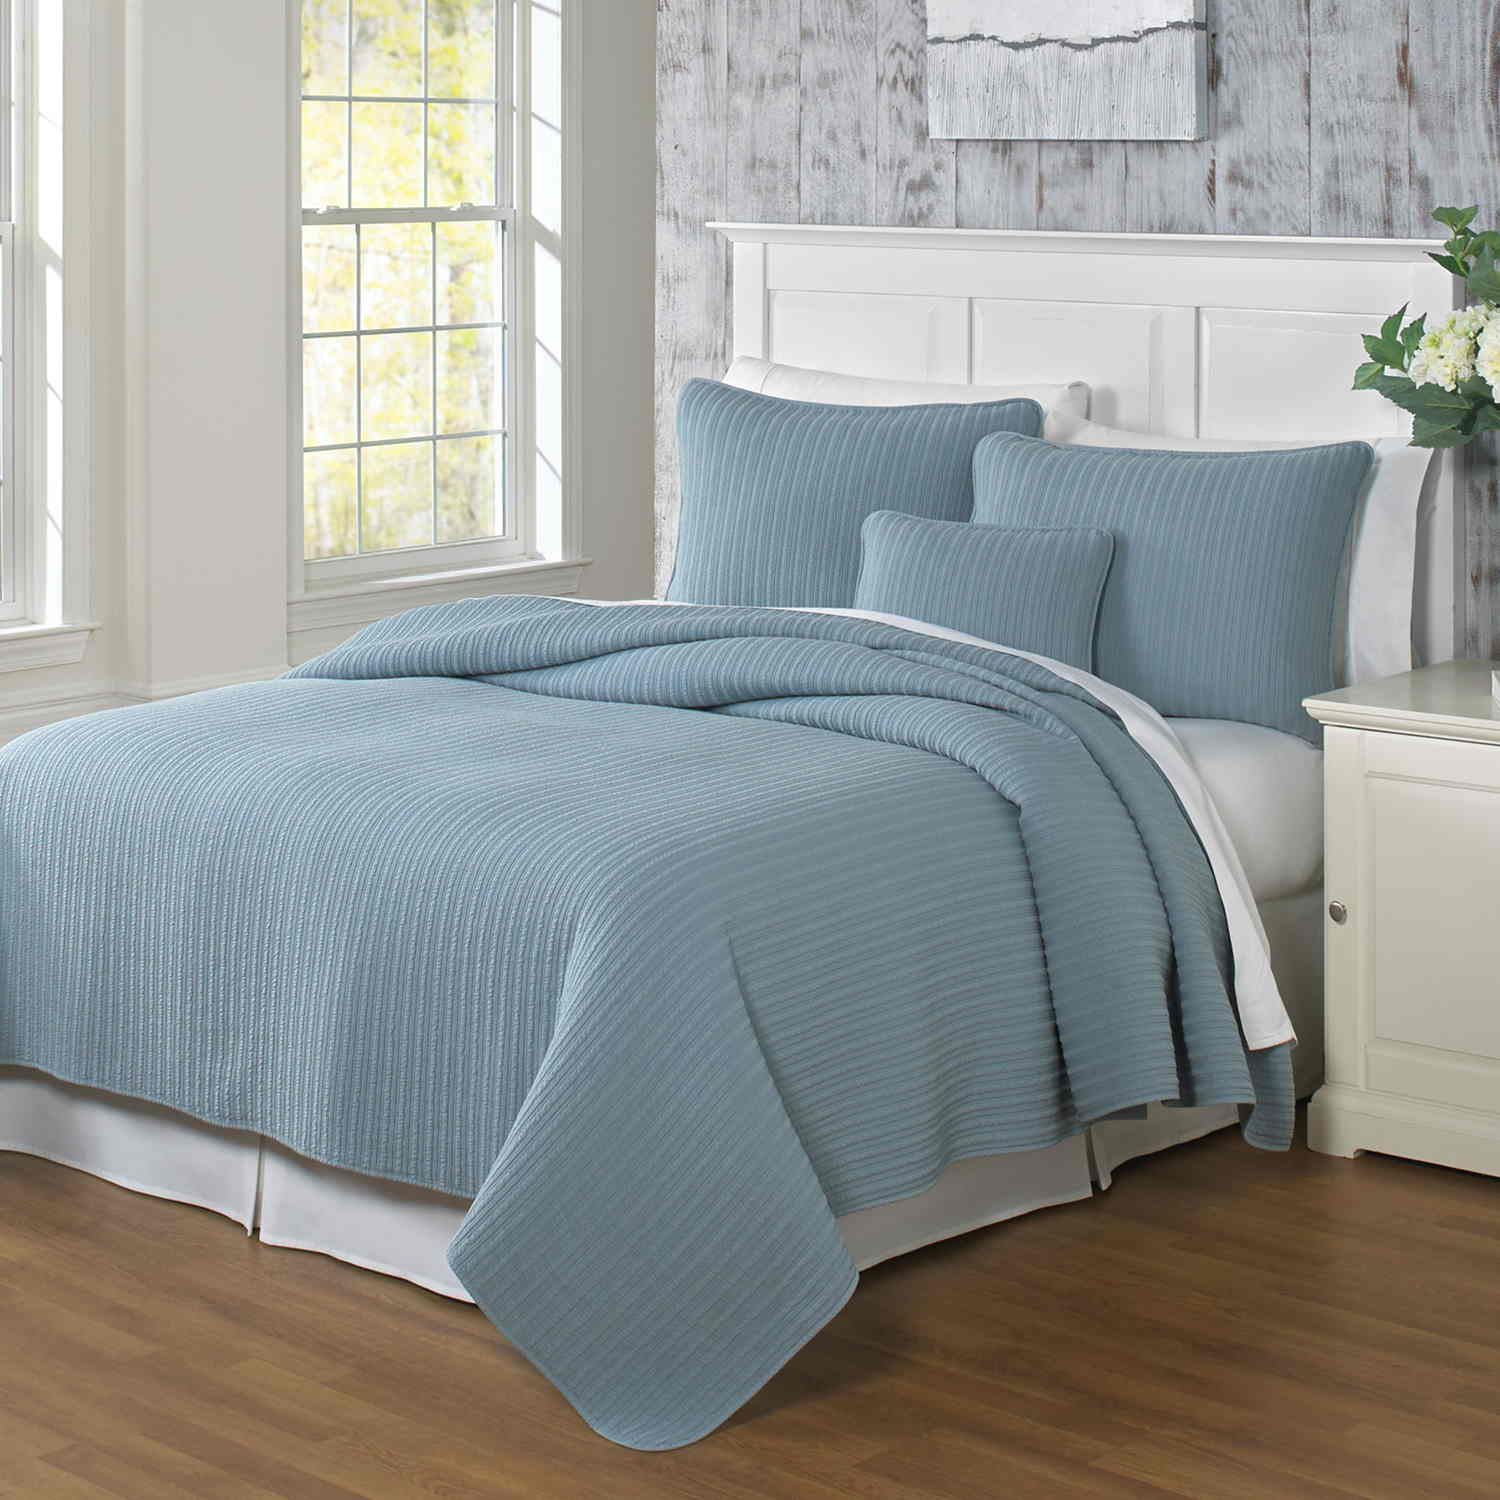 Traditions Linens Bedding Kendall Collection